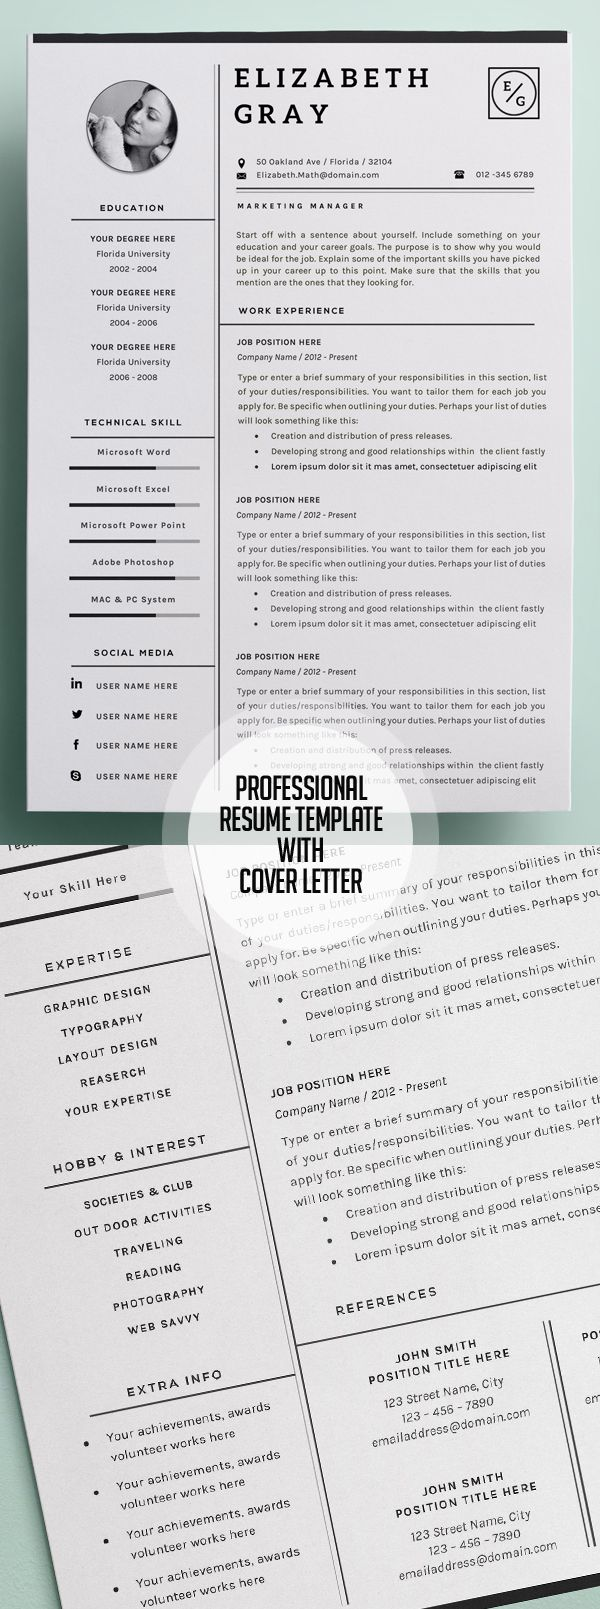 Opposenewapstandardsus  Inspiring  Resume Ideas On Pinterest  Resume Resume Templates And  With Great Professional And Modern Resume Template With Page Cover Cvtemplate With Cute What Looks Good On A Resume Also Updating Your Resume In Addition Should You Put Your Gpa On Your Resume And Sample Computer Science Resume As Well As Cheap Resumes Additionally Finance Resume Objective From Pinterestcom With Opposenewapstandardsus  Great  Resume Ideas On Pinterest  Resume Resume Templates And  With Cute Professional And Modern Resume Template With Page Cover Cvtemplate And Inspiring What Looks Good On A Resume Also Updating Your Resume In Addition Should You Put Your Gpa On Your Resume From Pinterestcom